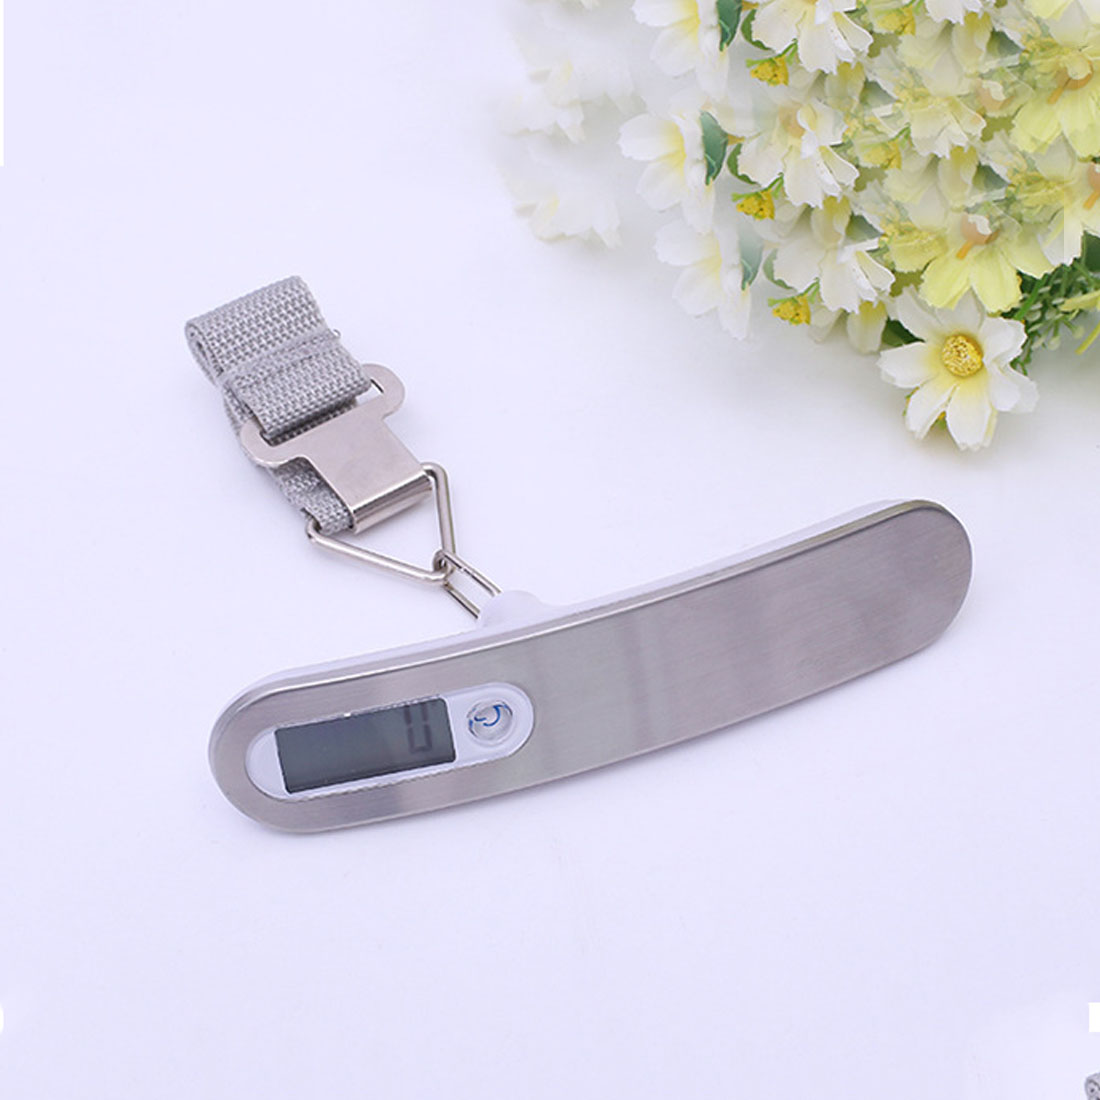 f69b631feb4a New 1pc Portable 50KG/10g Digital Luggage Scale LCD Electronic Hanging  Pocket Scale Weight Balance Data Hold Tare Auto Power Off